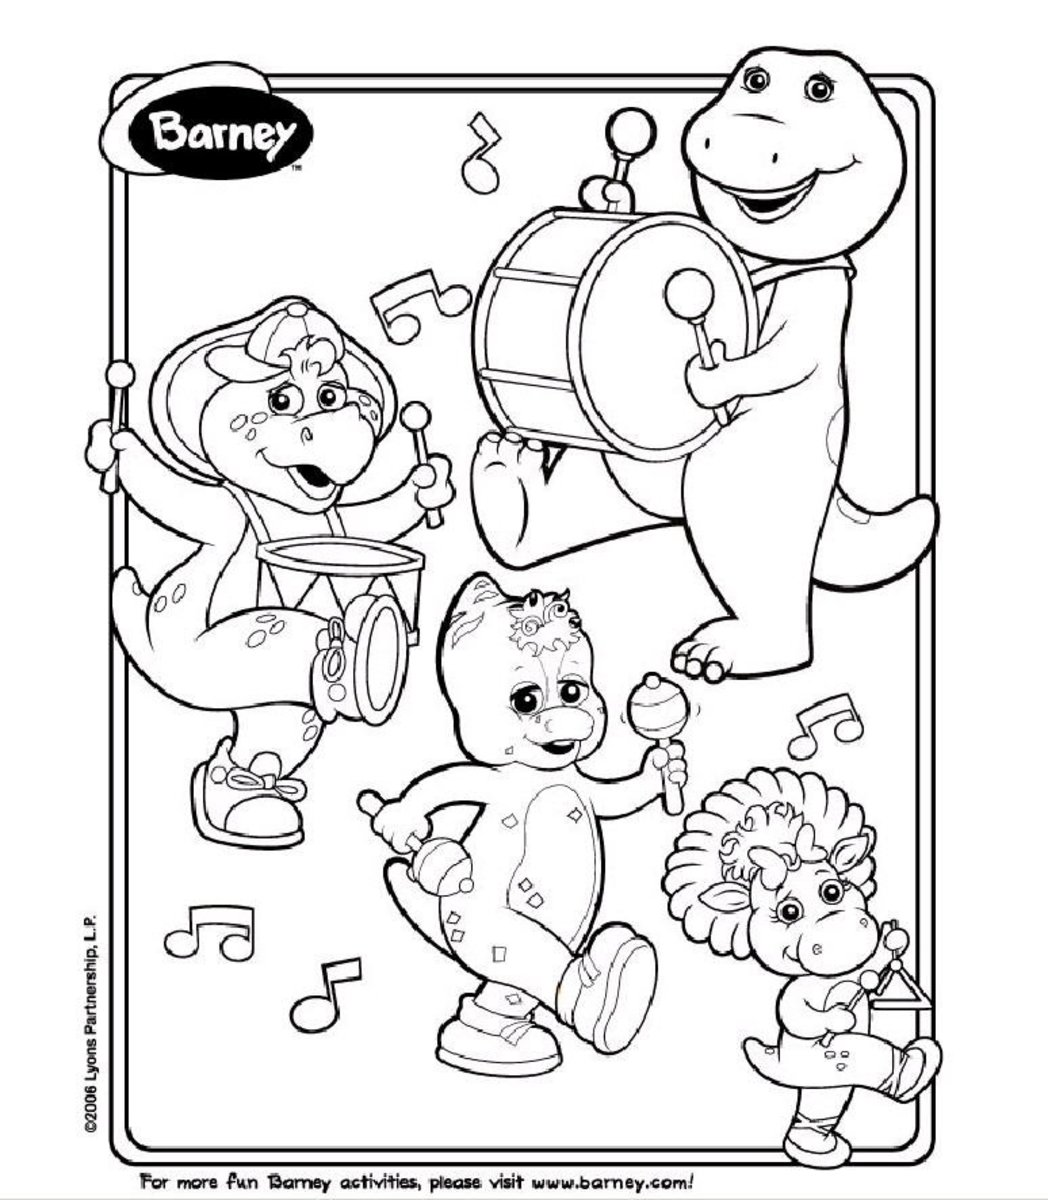 Barney coloring page with BJ and Baby Bop